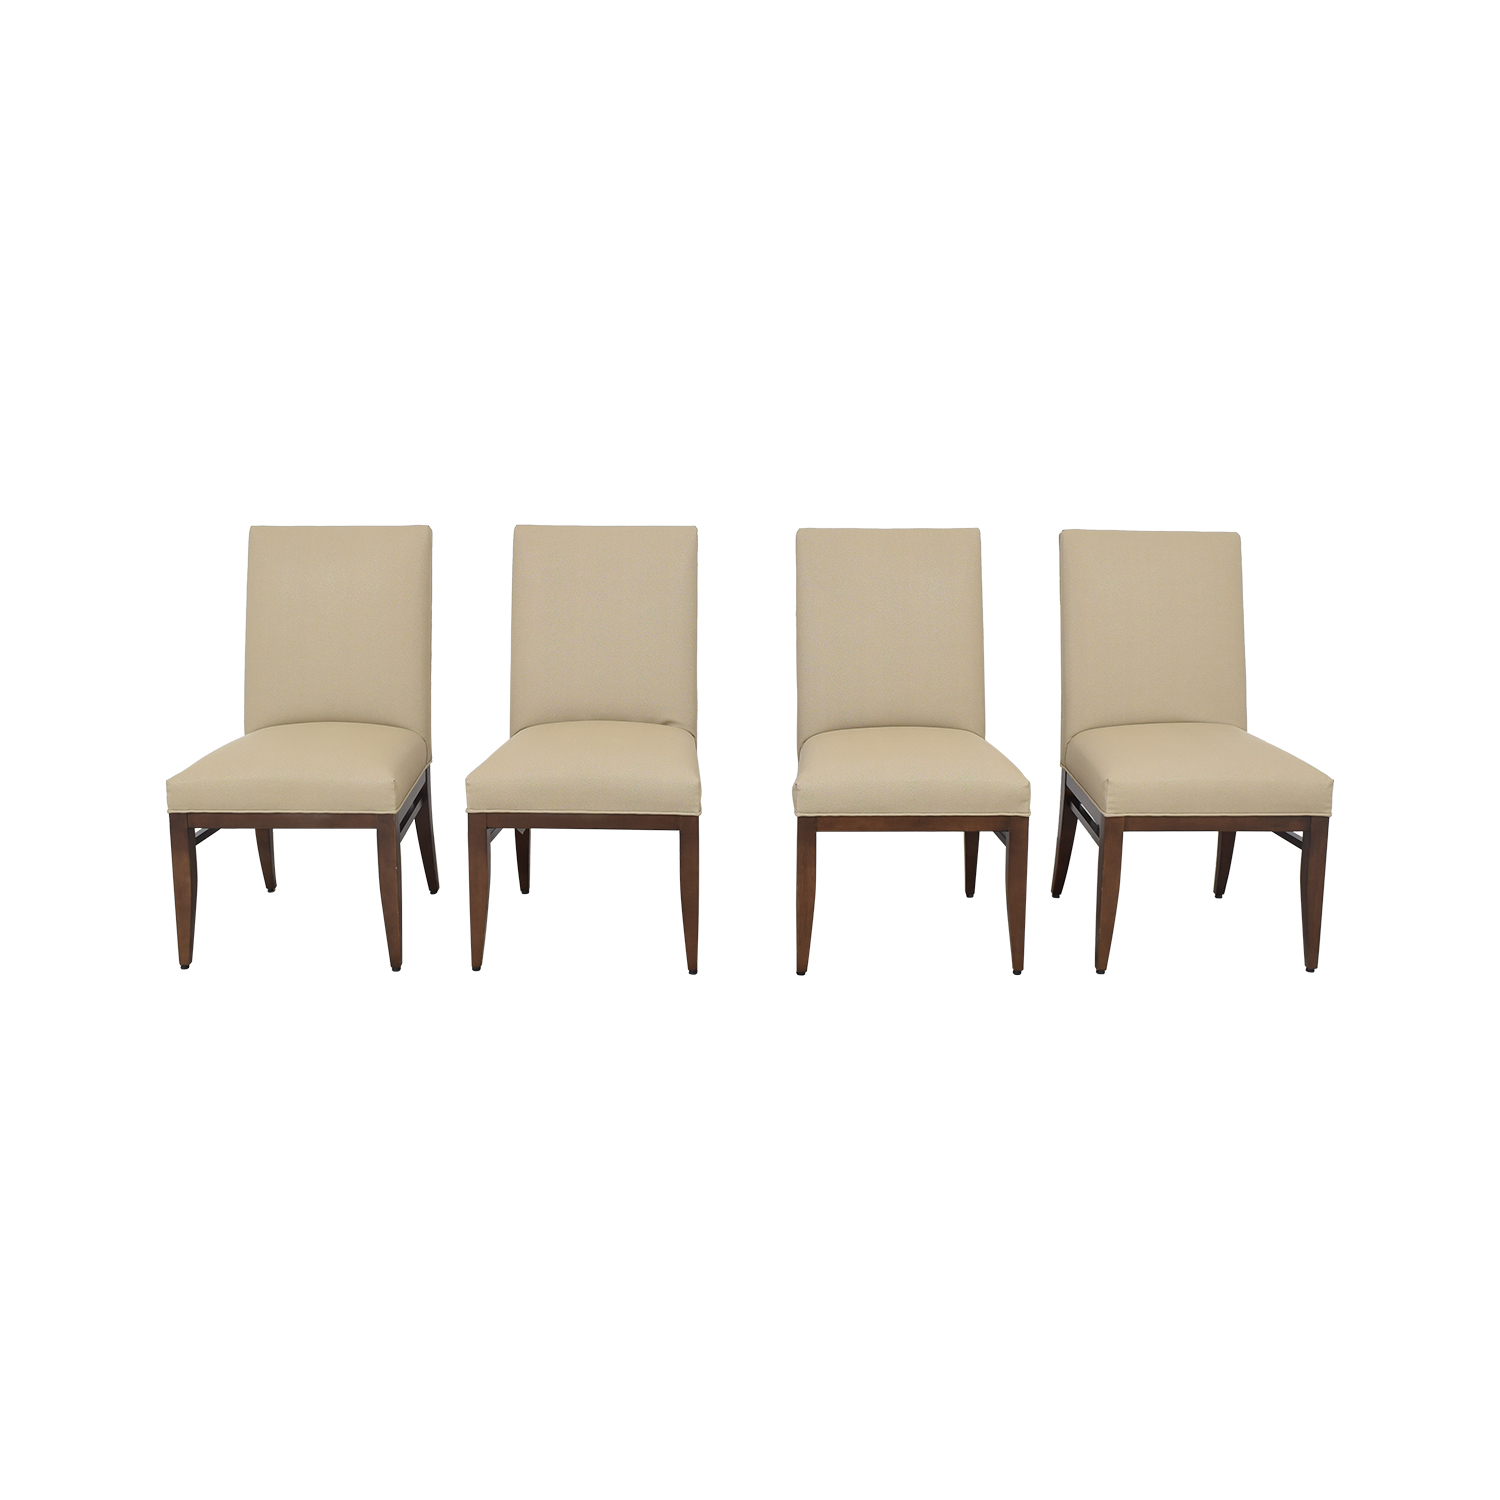 shop Duralee Kent Upholstered Dining Chairs Duralee Chairs